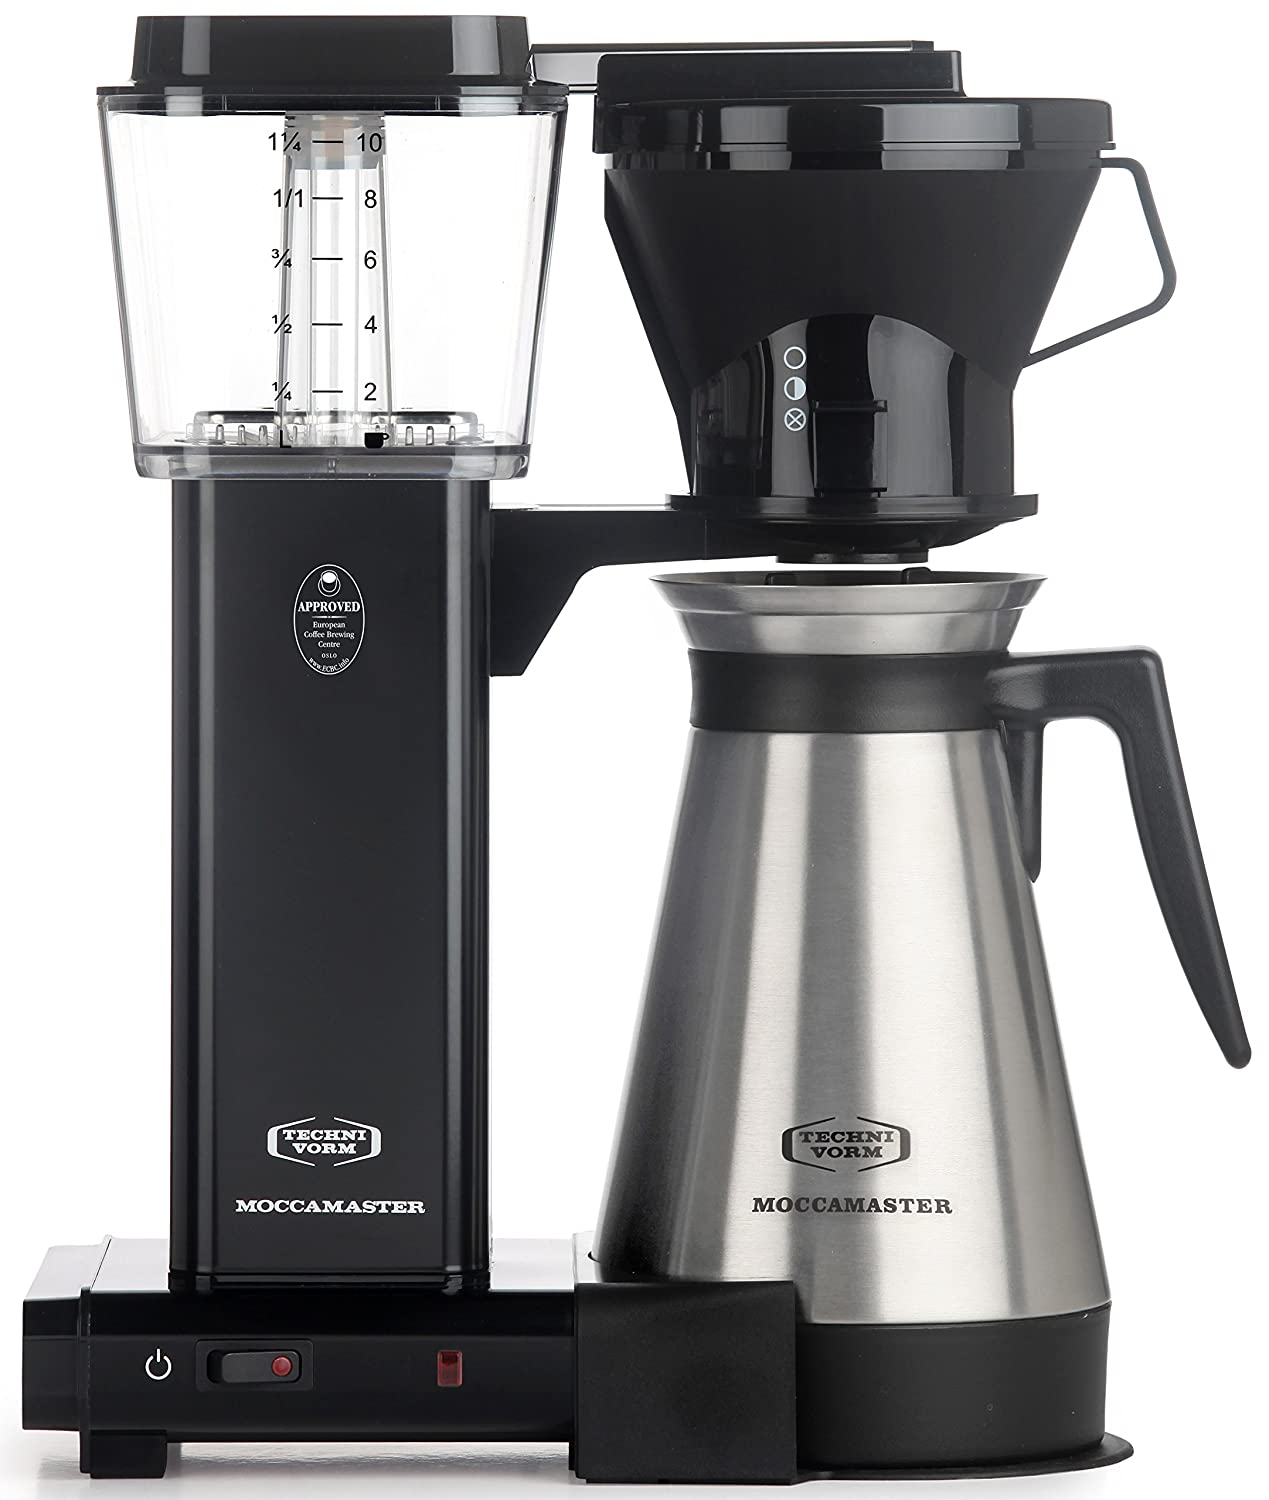 Technivorm Moccamaster 79114 KBT Coffee Brewer, 40 oz, Black